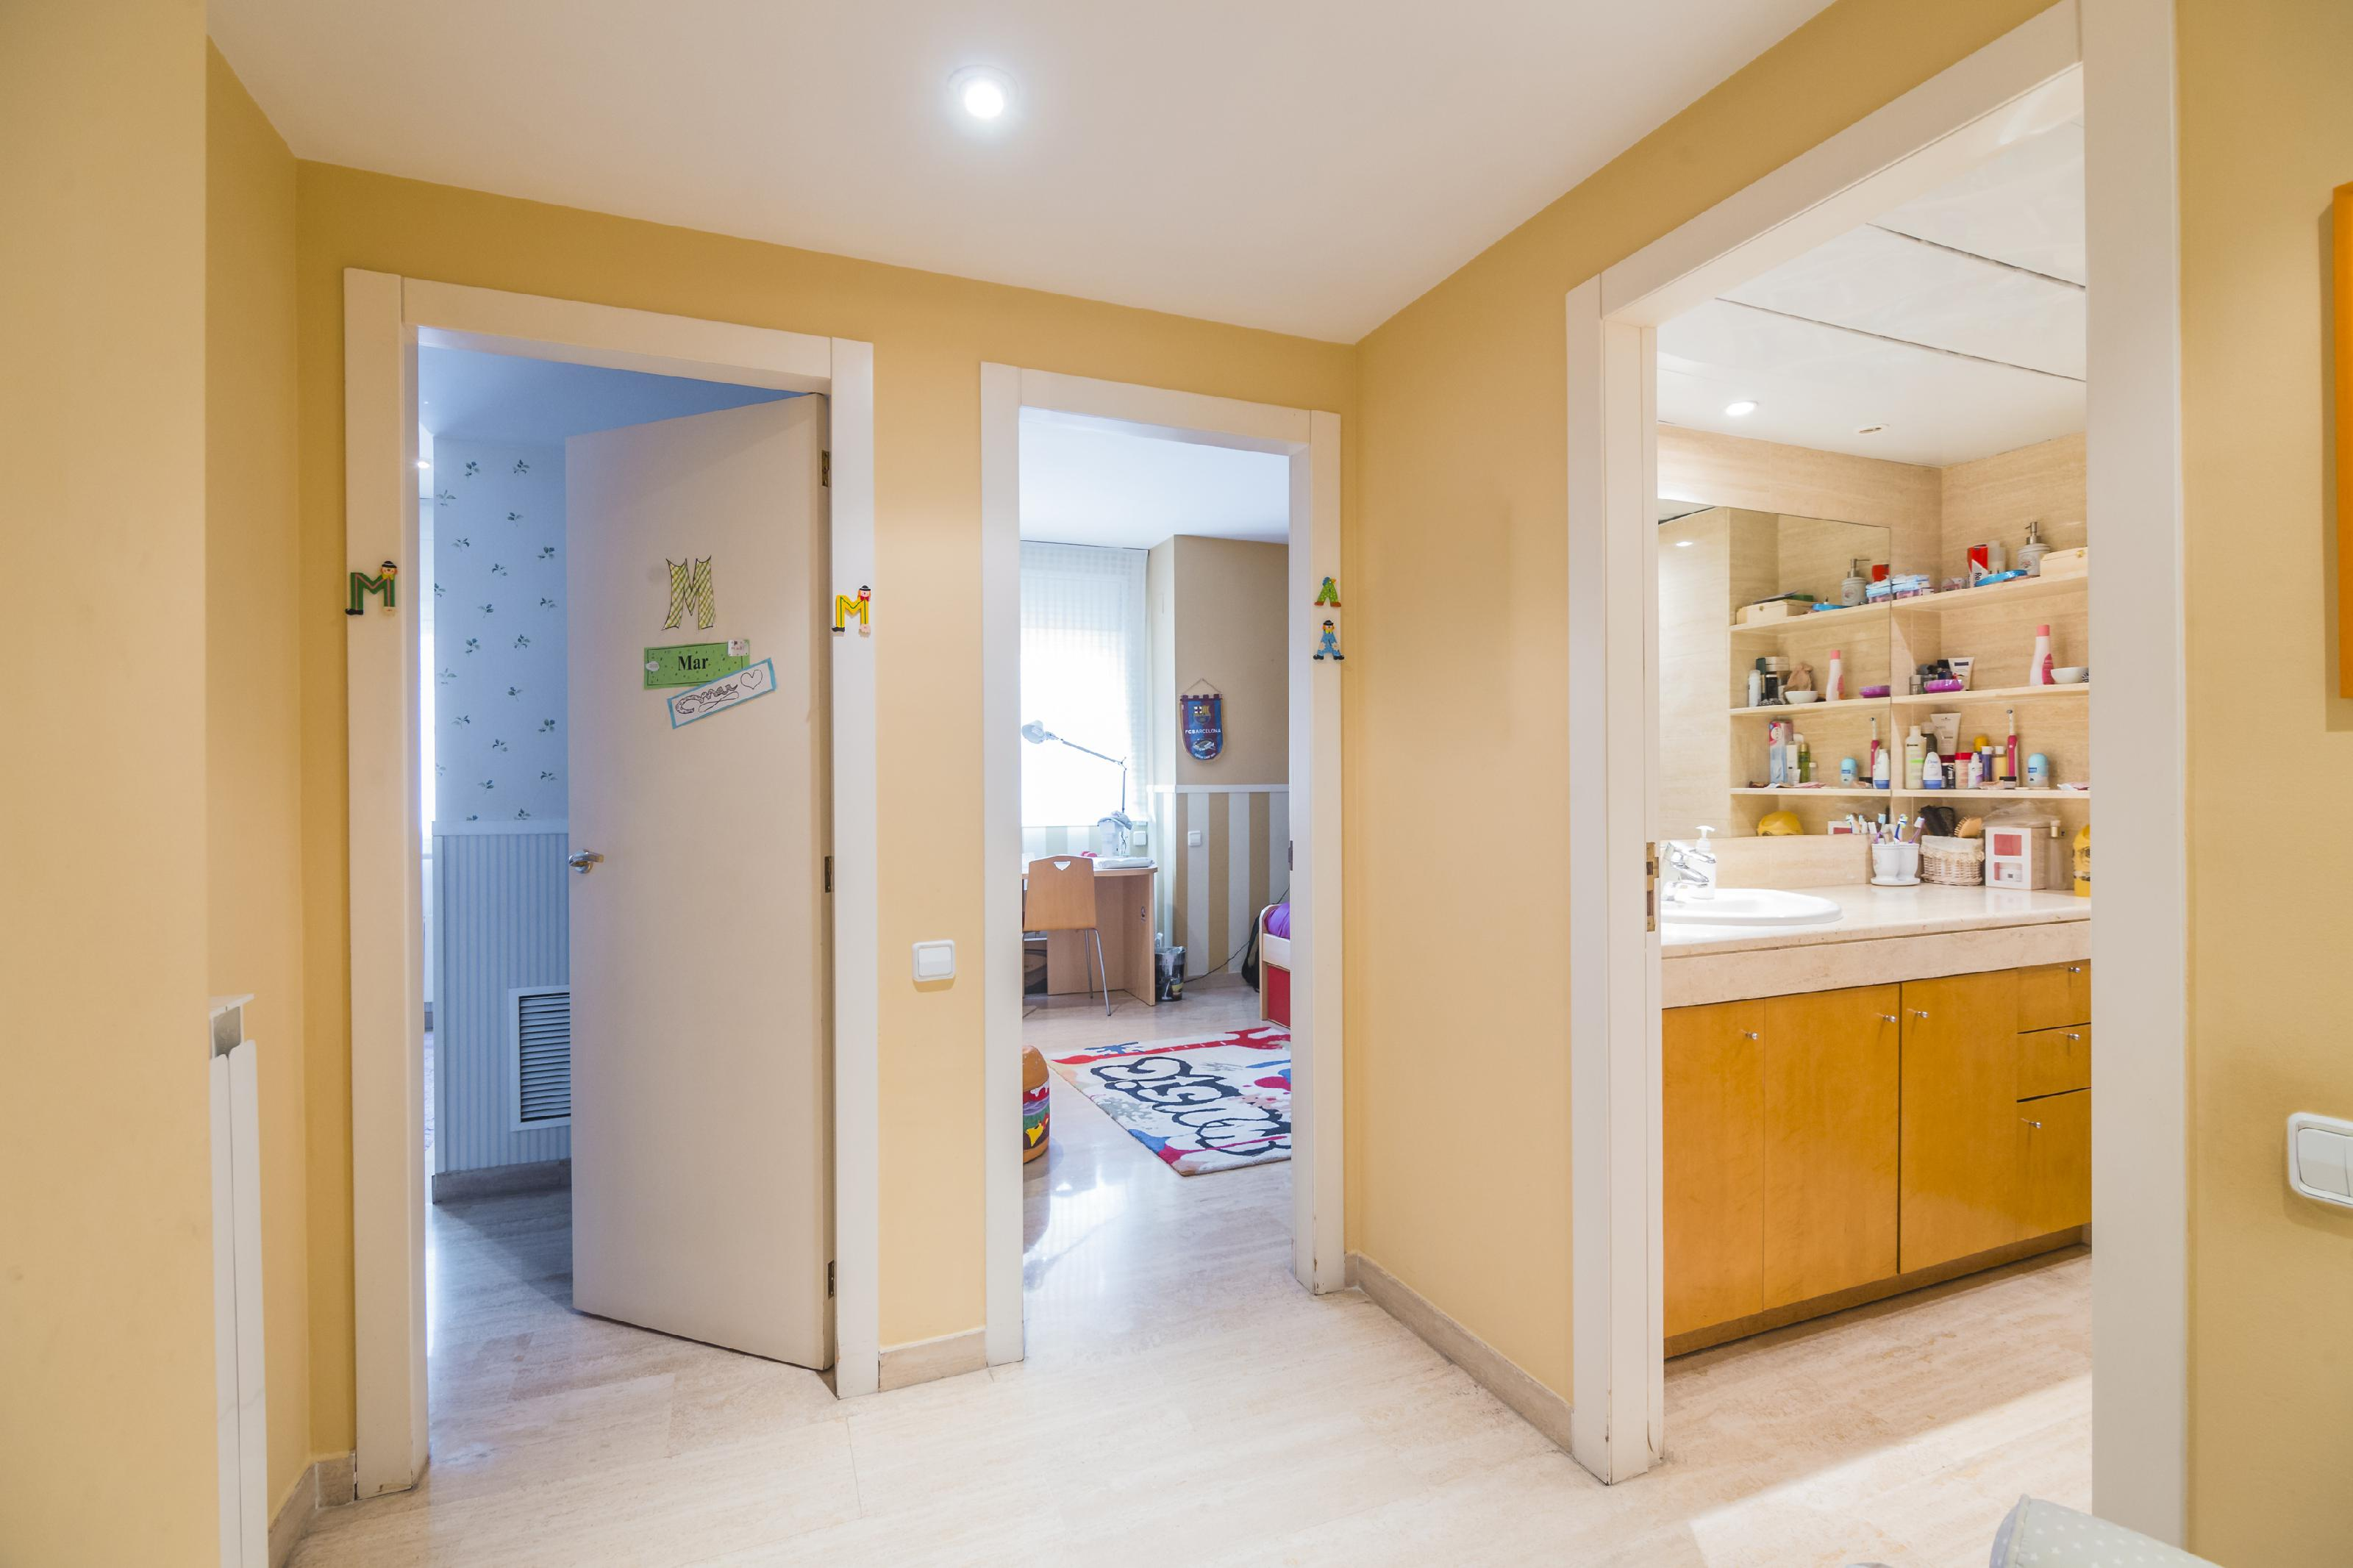 232637 Penthouse for sale in Sarrià-Sant Gervasi, Sant Gervasi-Galvany 15